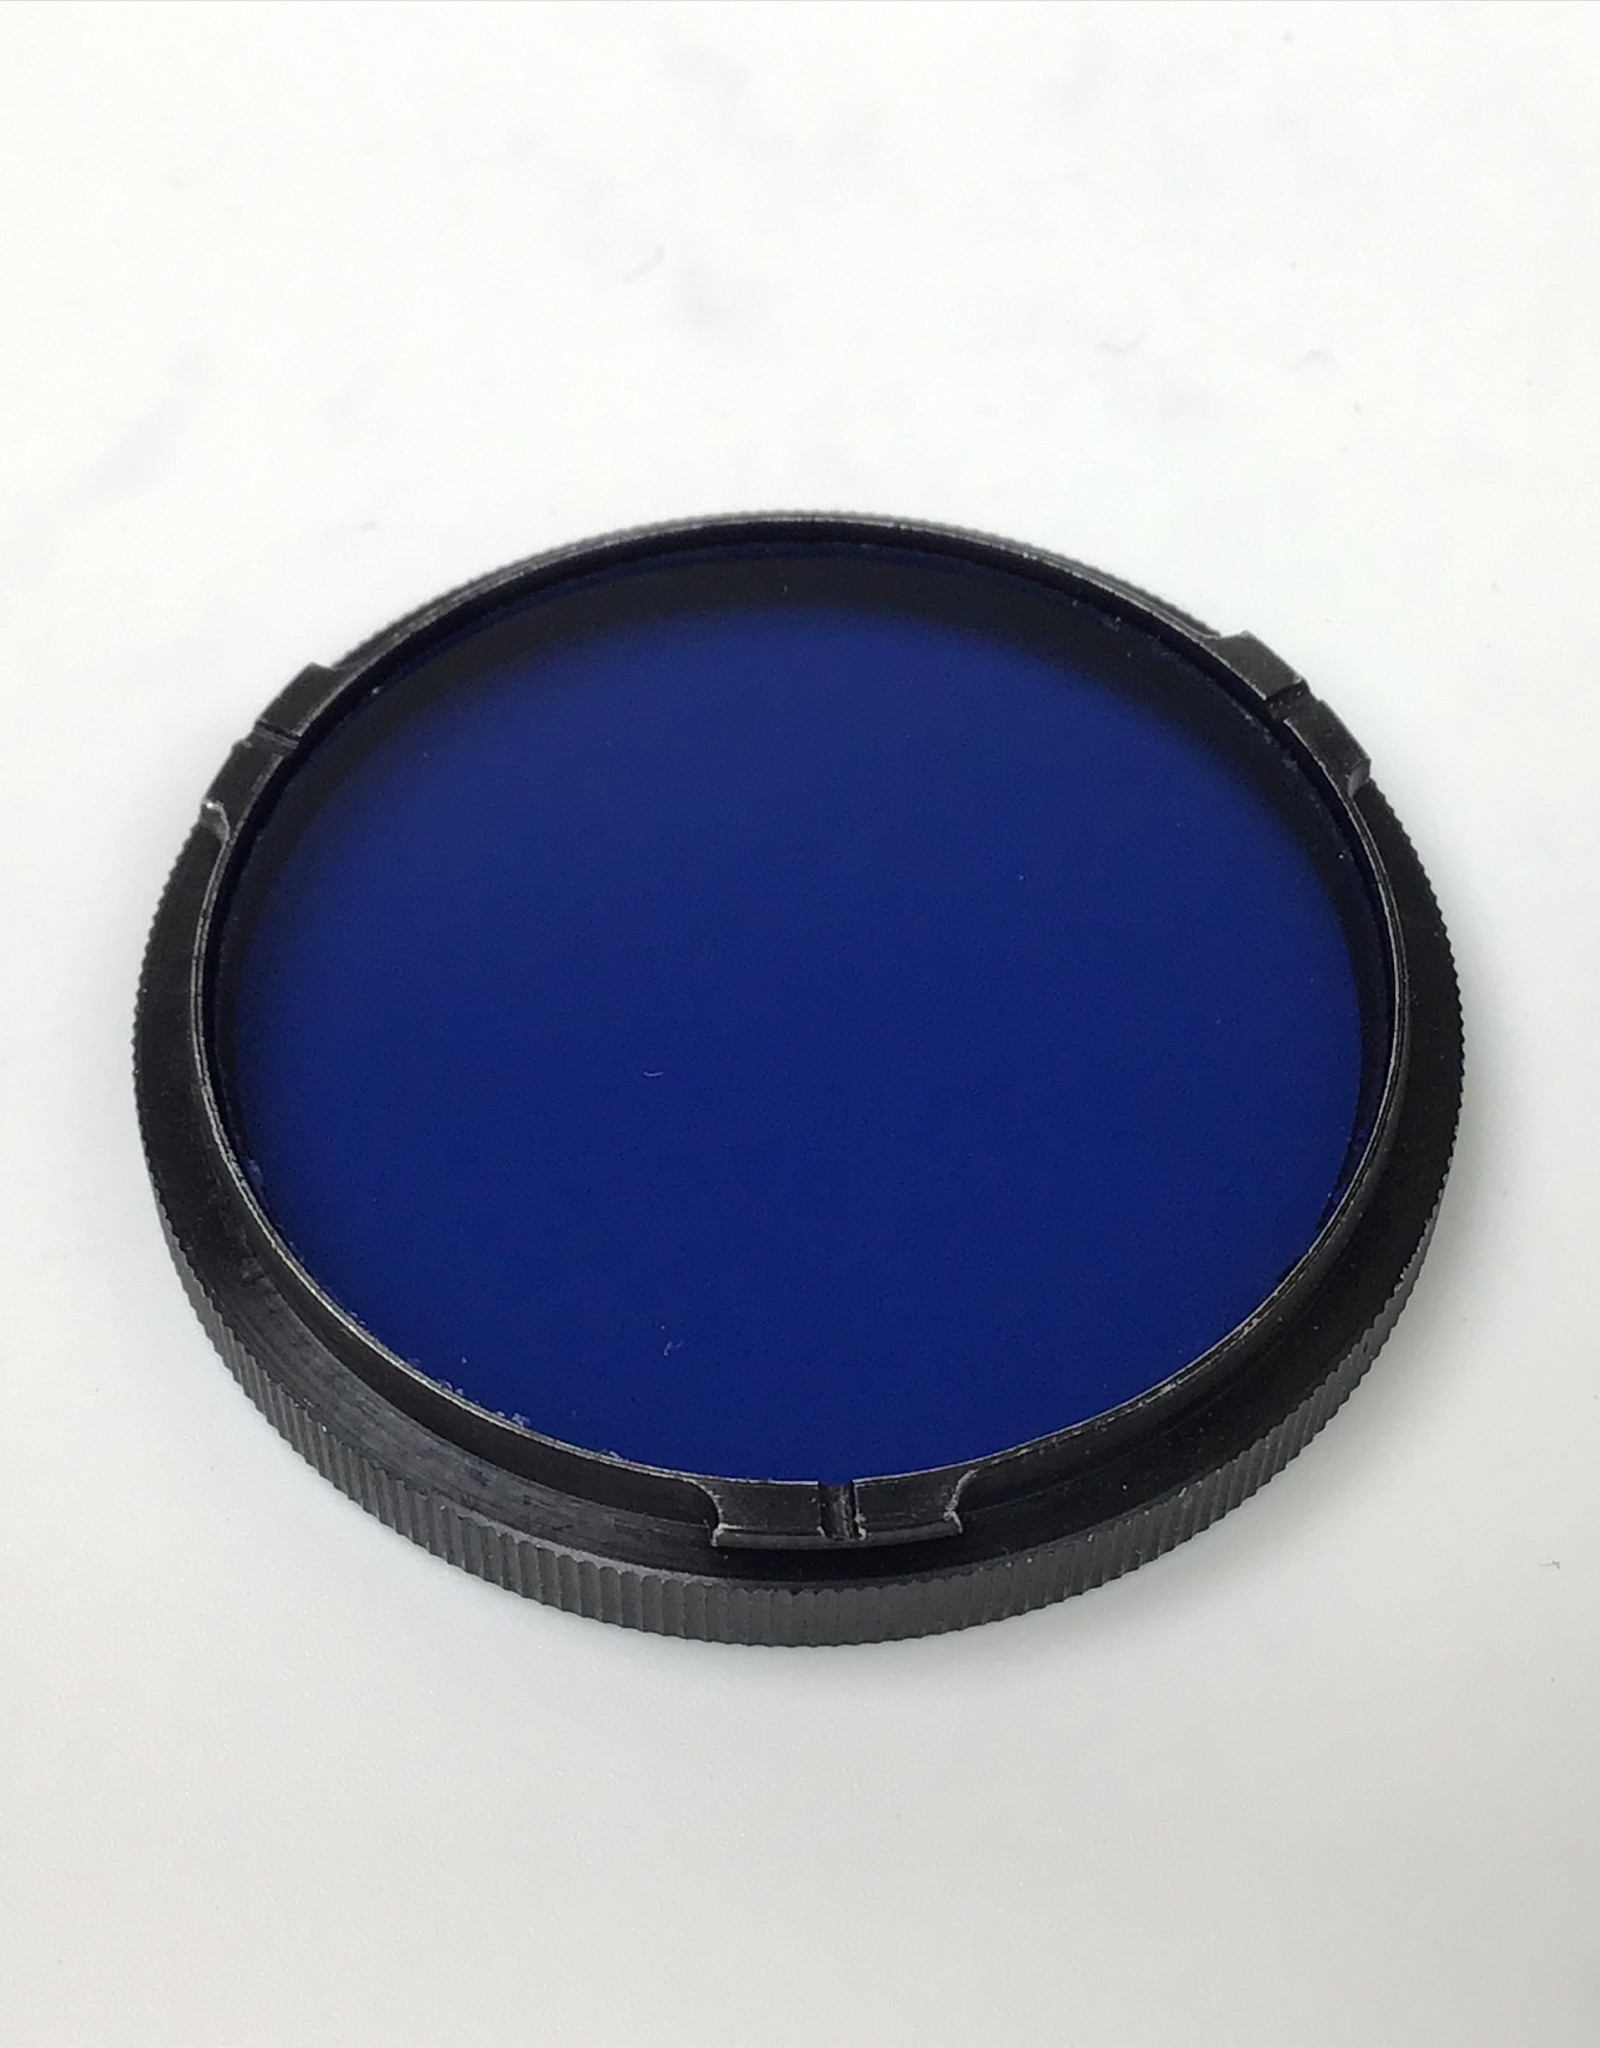 Camrex Bay II 80A Blue Filter to fit Rolleiflex Used EX